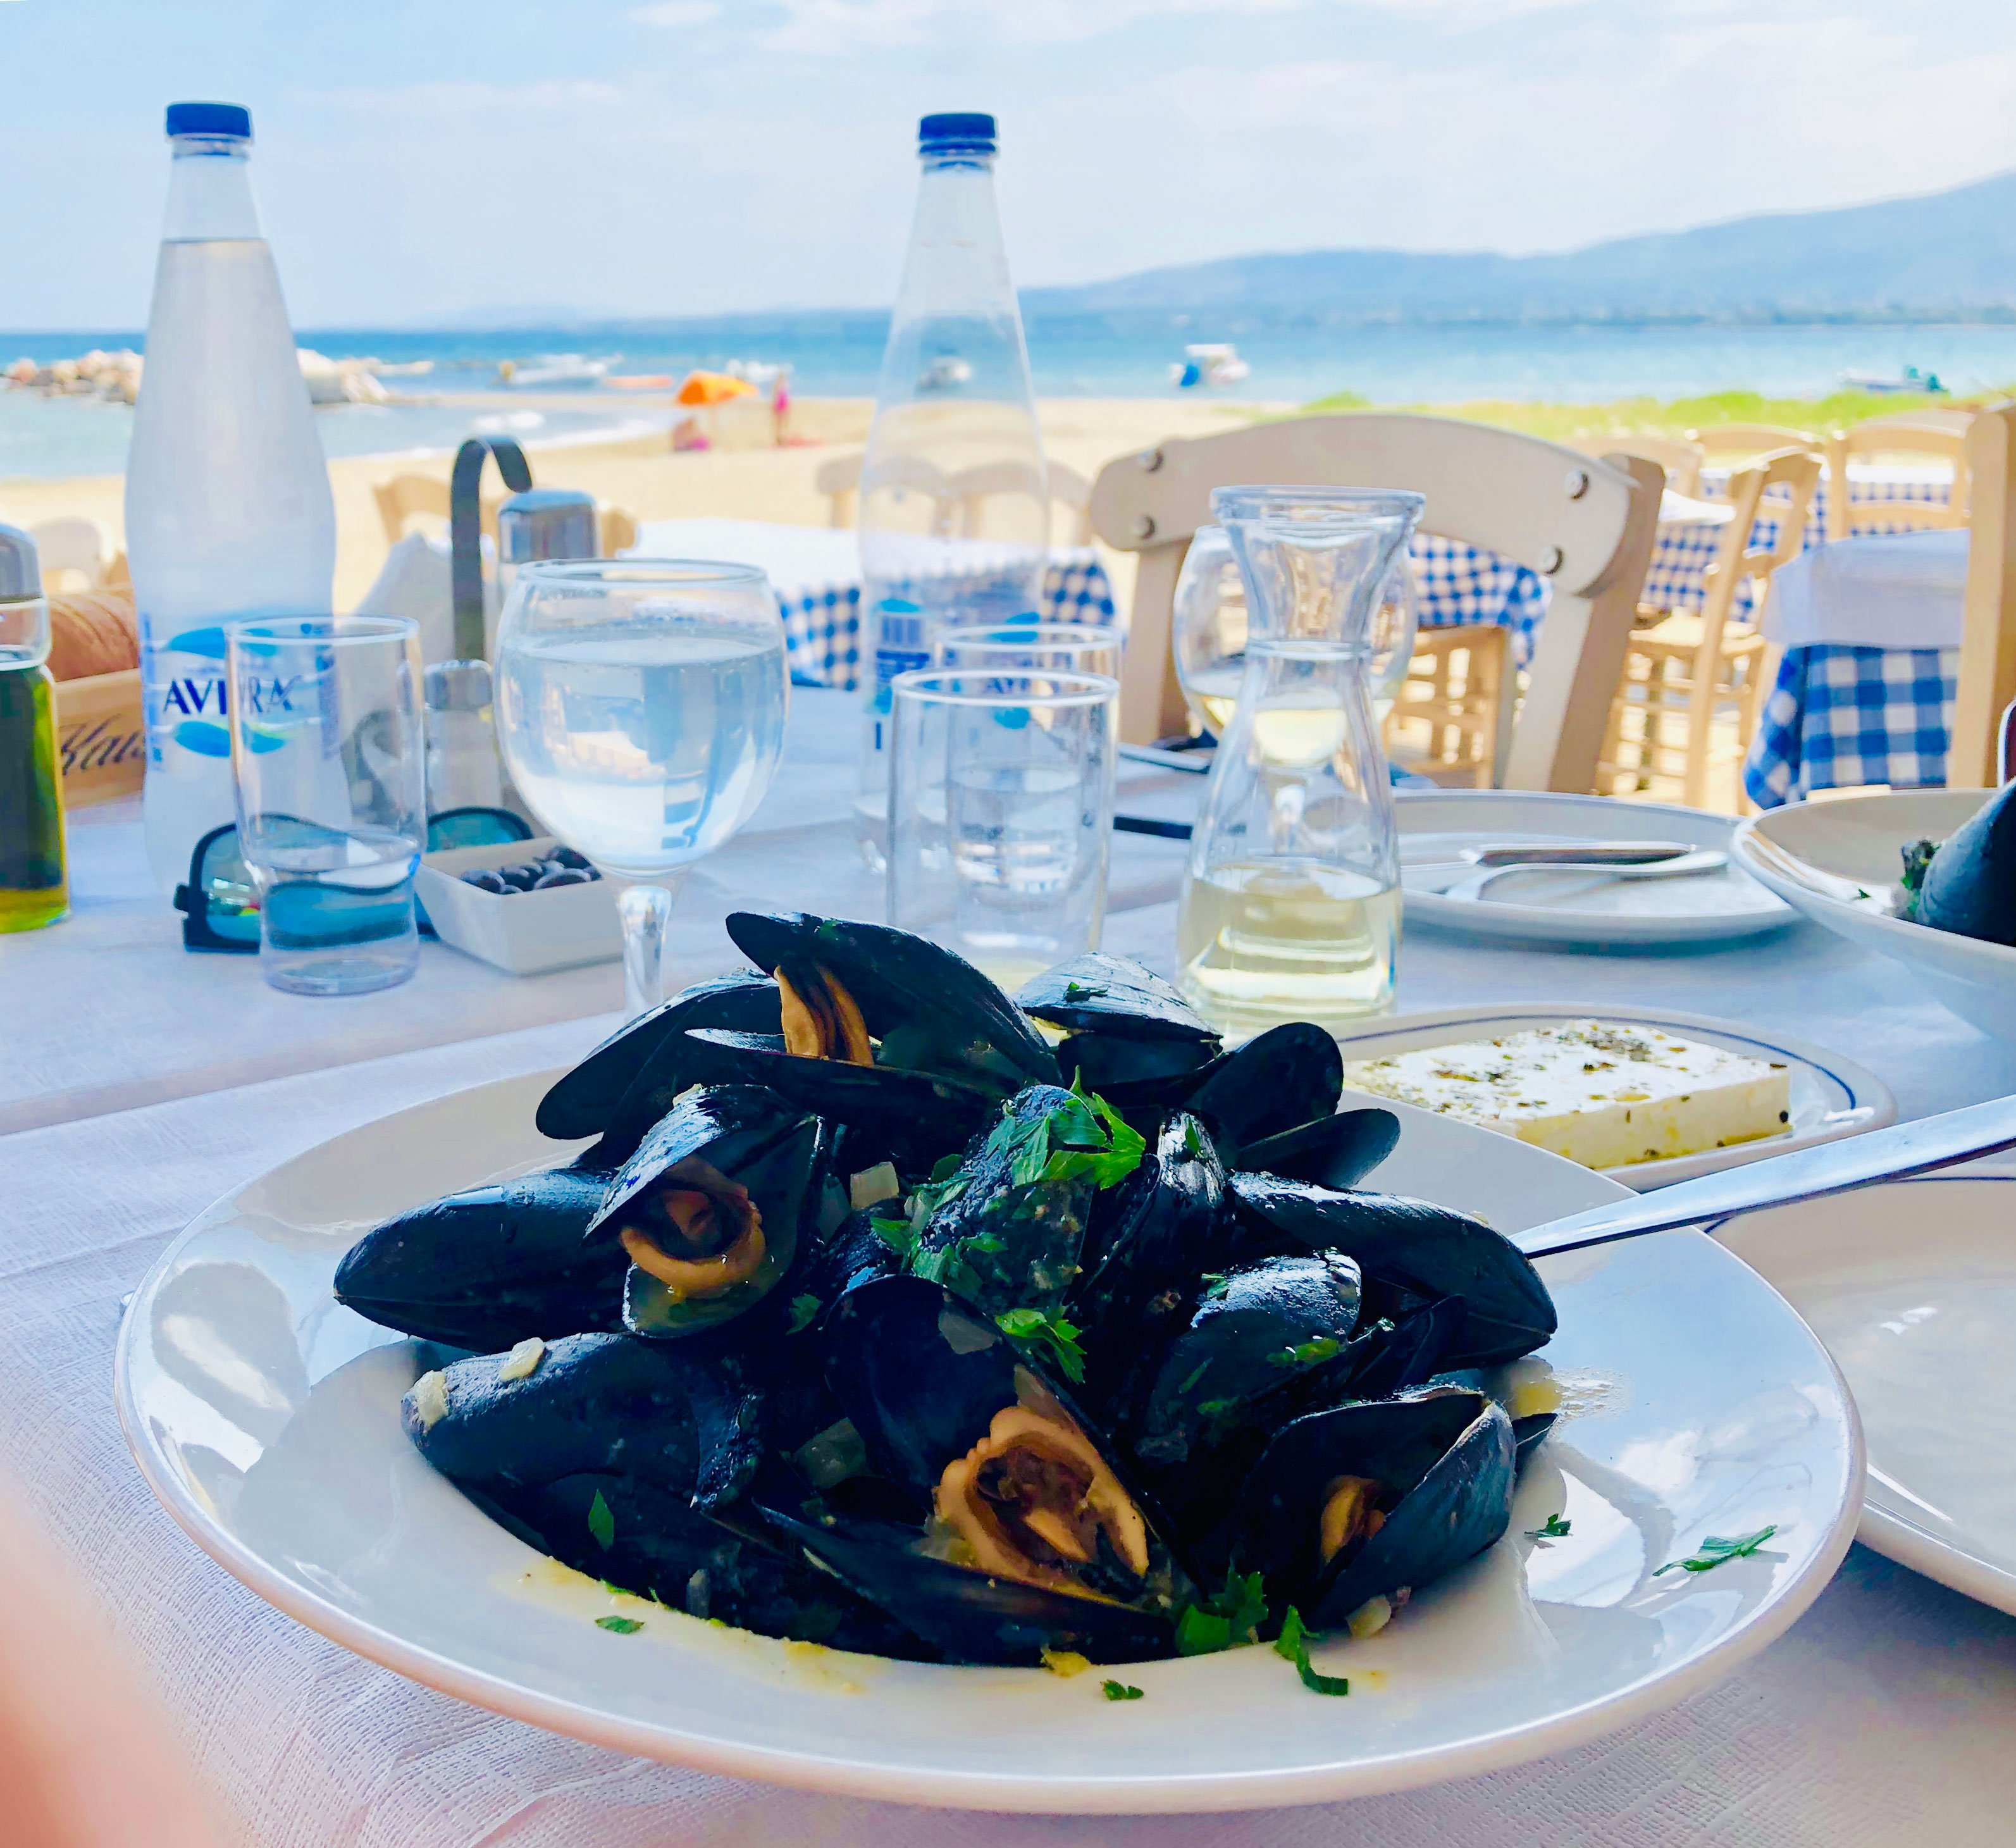 Keto Mediterranean lifestyle and how the sea affects us positively 6